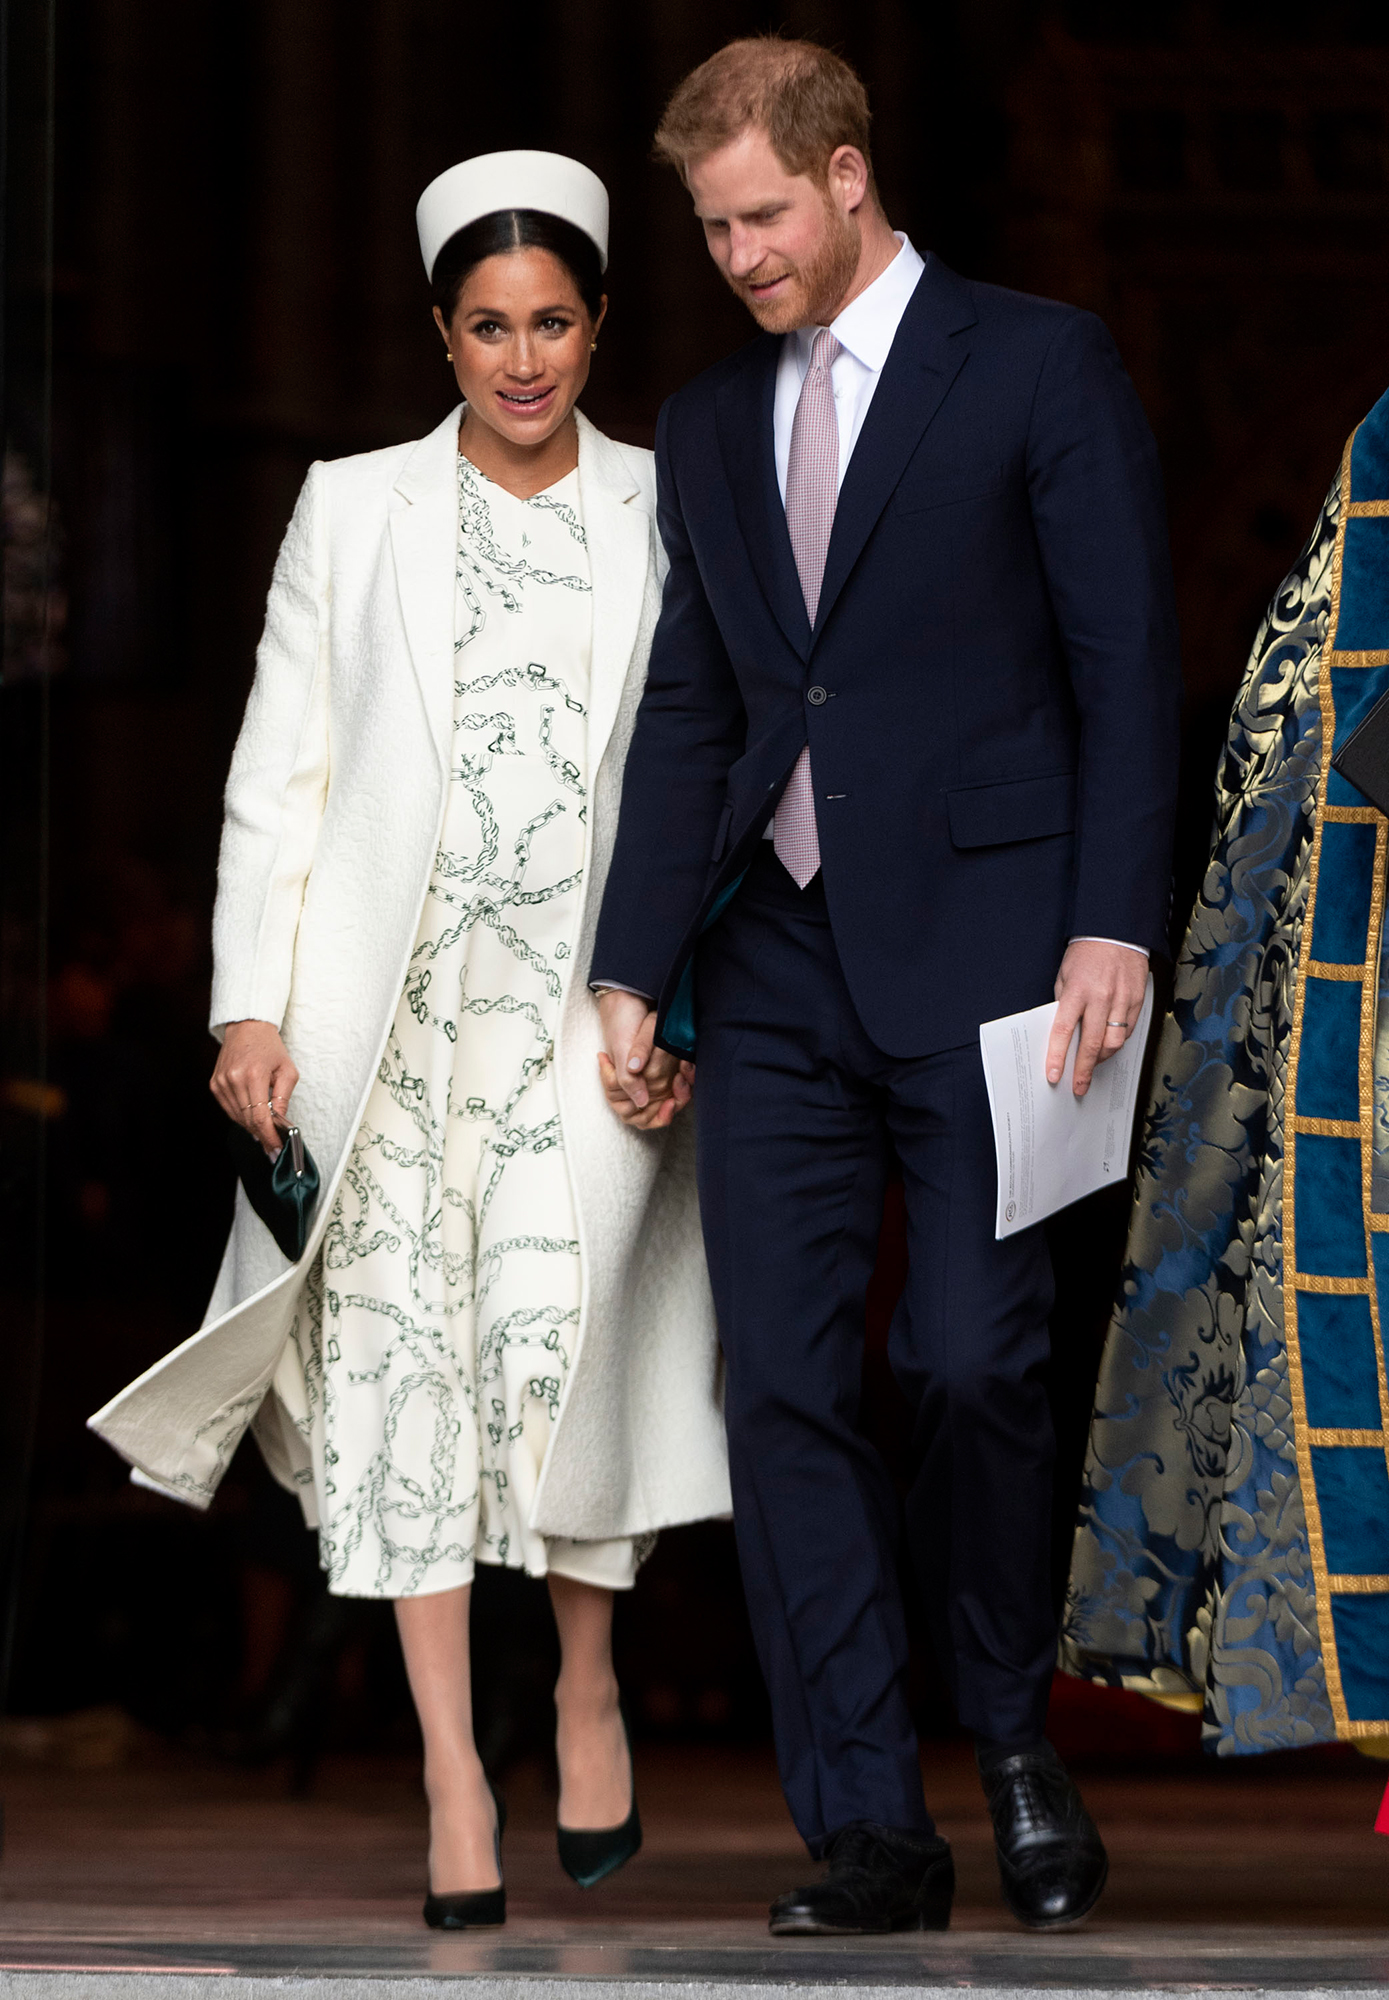 Prince Harry and Duchess Meghan's 1st Year of Marriage - Harry and Meghan joined William, Kate, Queen Elizabeth II, Prince Charles and Duchess Camilla for a Commonwealth Day 2019 interfaith service at Westminster Abbey in London on Monday, March 11. Days later, the palace confirmed the Duke and Duchess of Sussex officially split royal households from the Duke and Duchess of Cambridge.